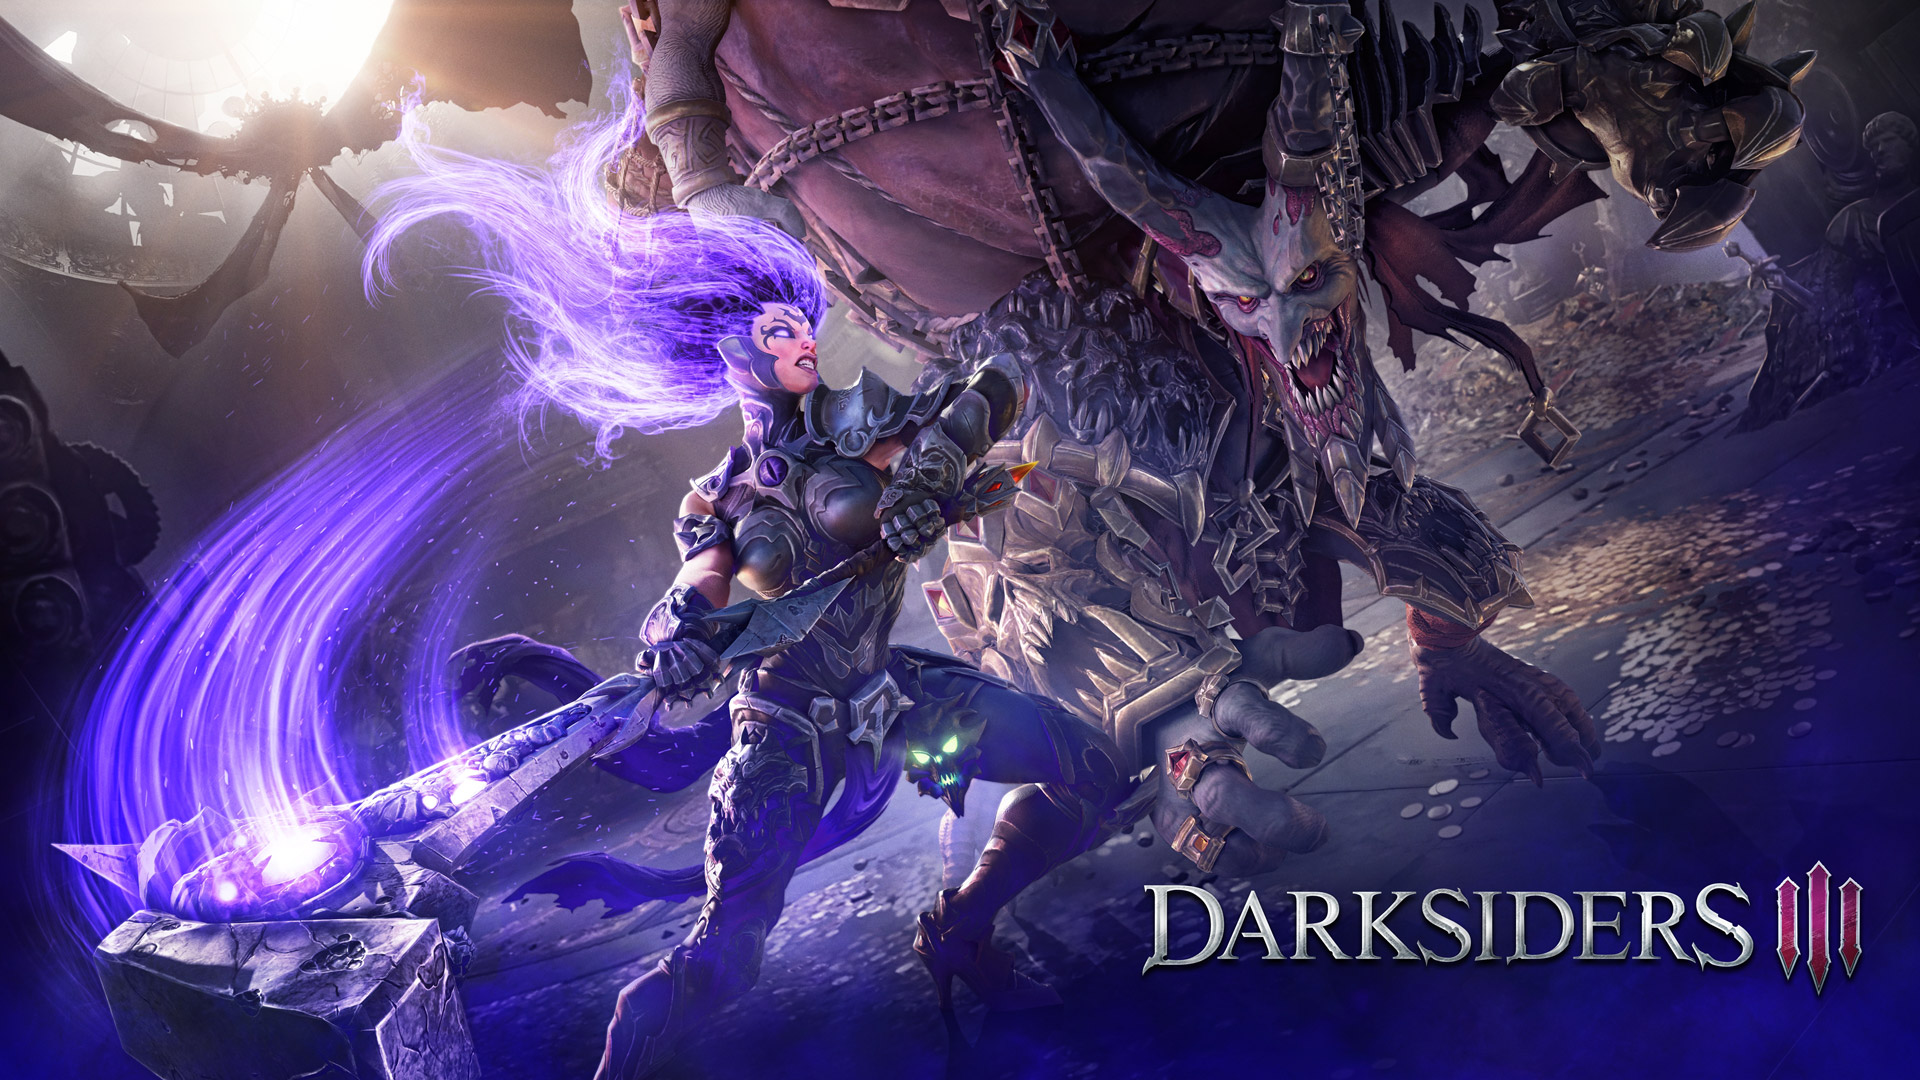 Darksiders III Wallpaper in 1920x1080